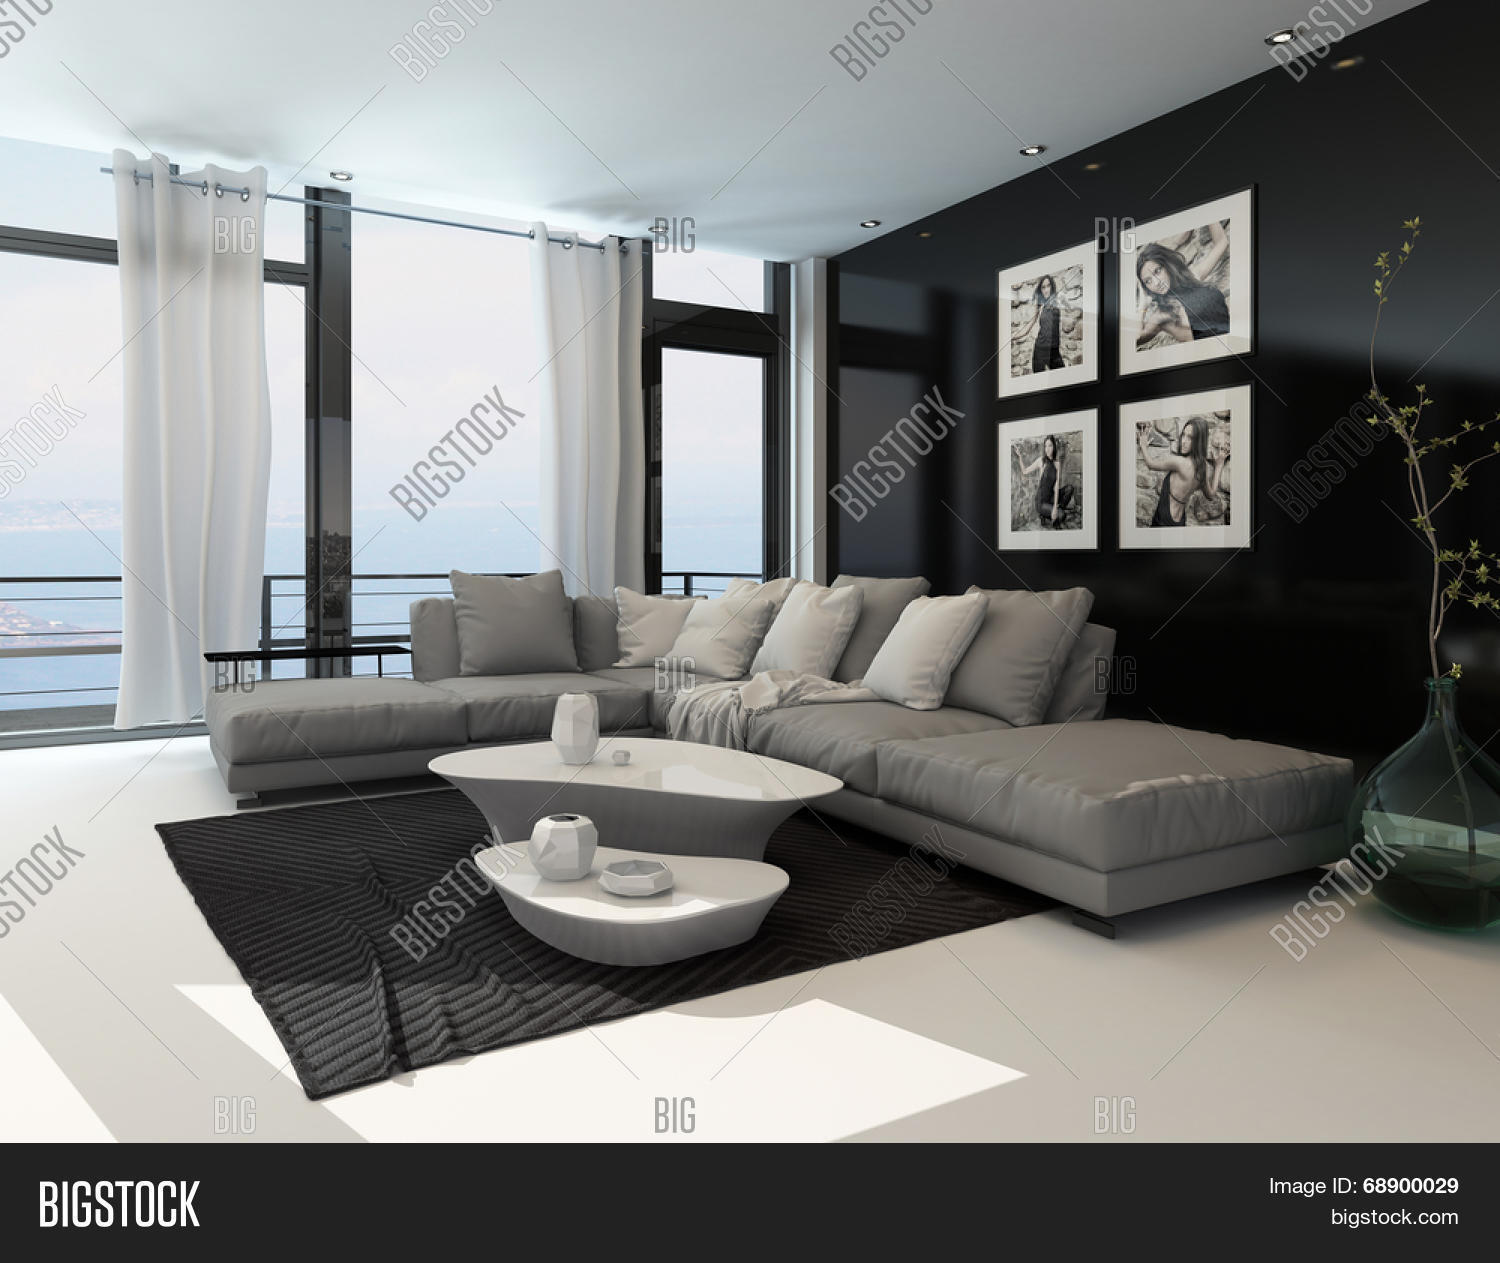 Lounge interior with a dark accent wall and floor to ceiling window overlooking the